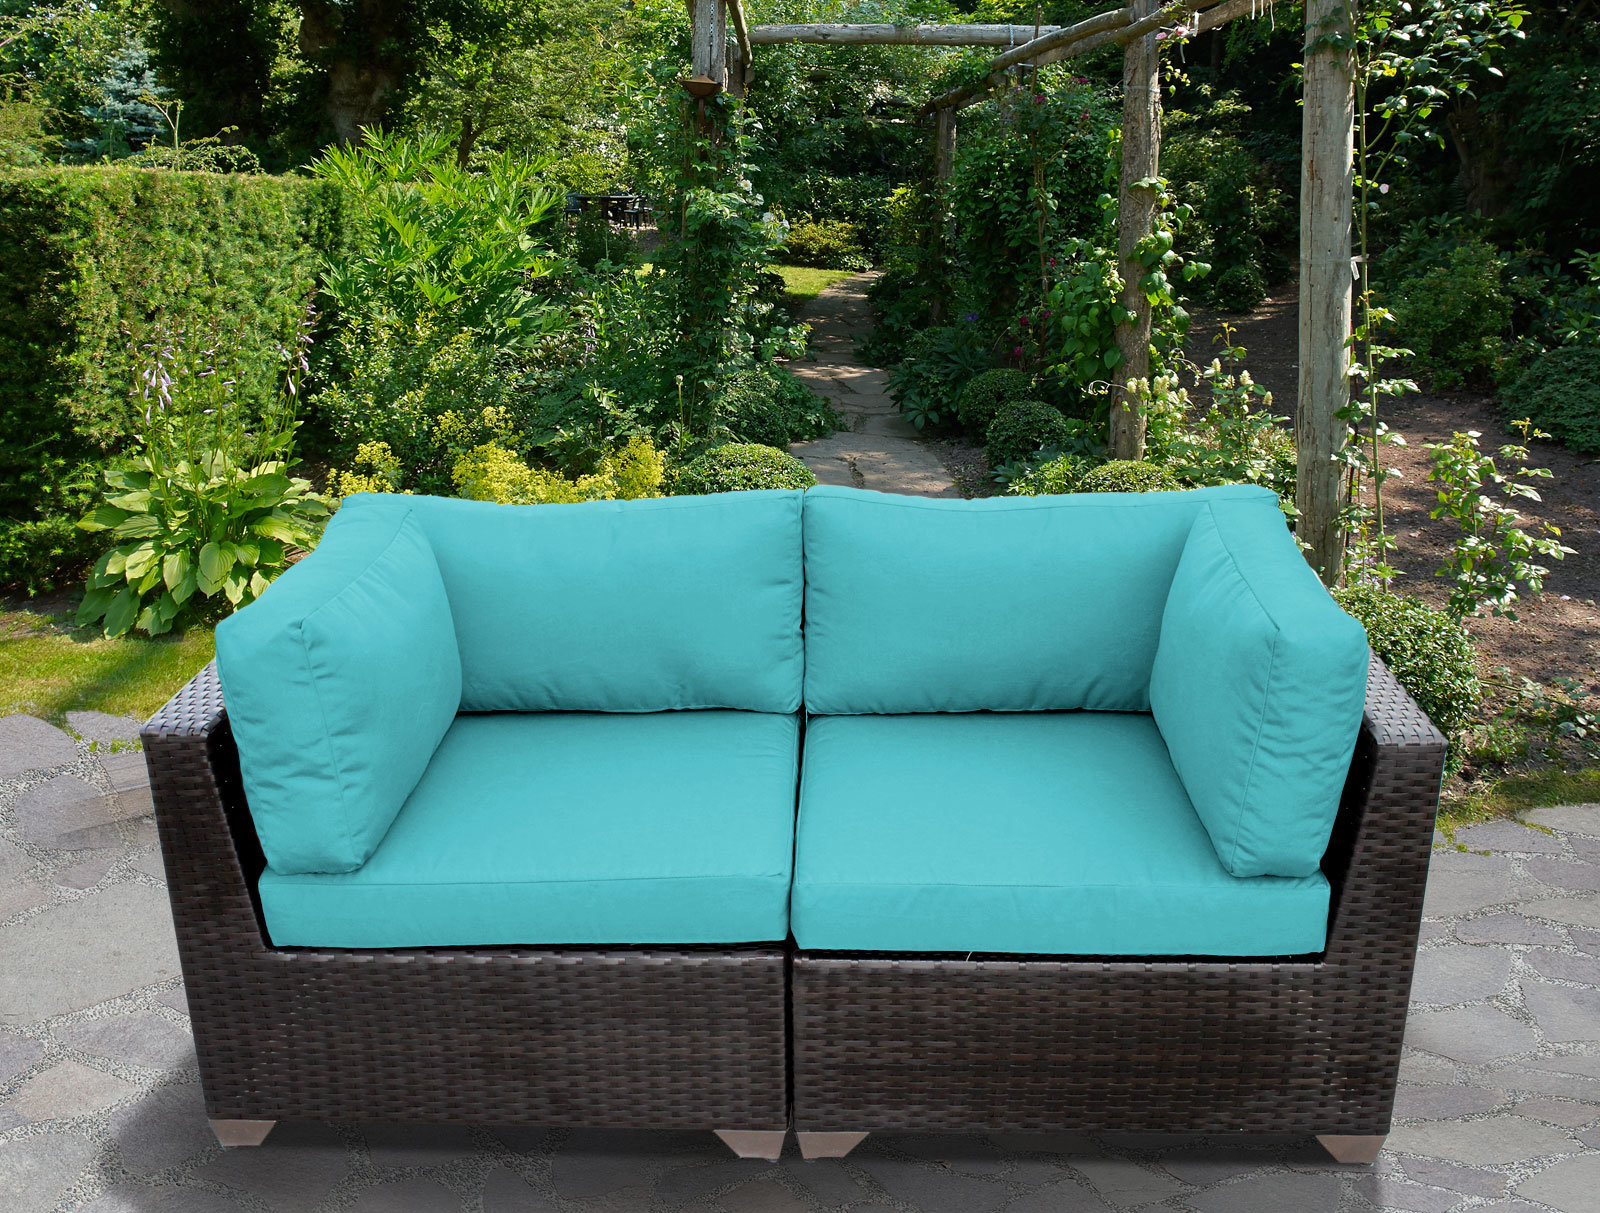 Well Liked Mosca Patio Loveseats With Cushions Regarding Camak Patio Loveseat With Cushions (View 15 of 20)